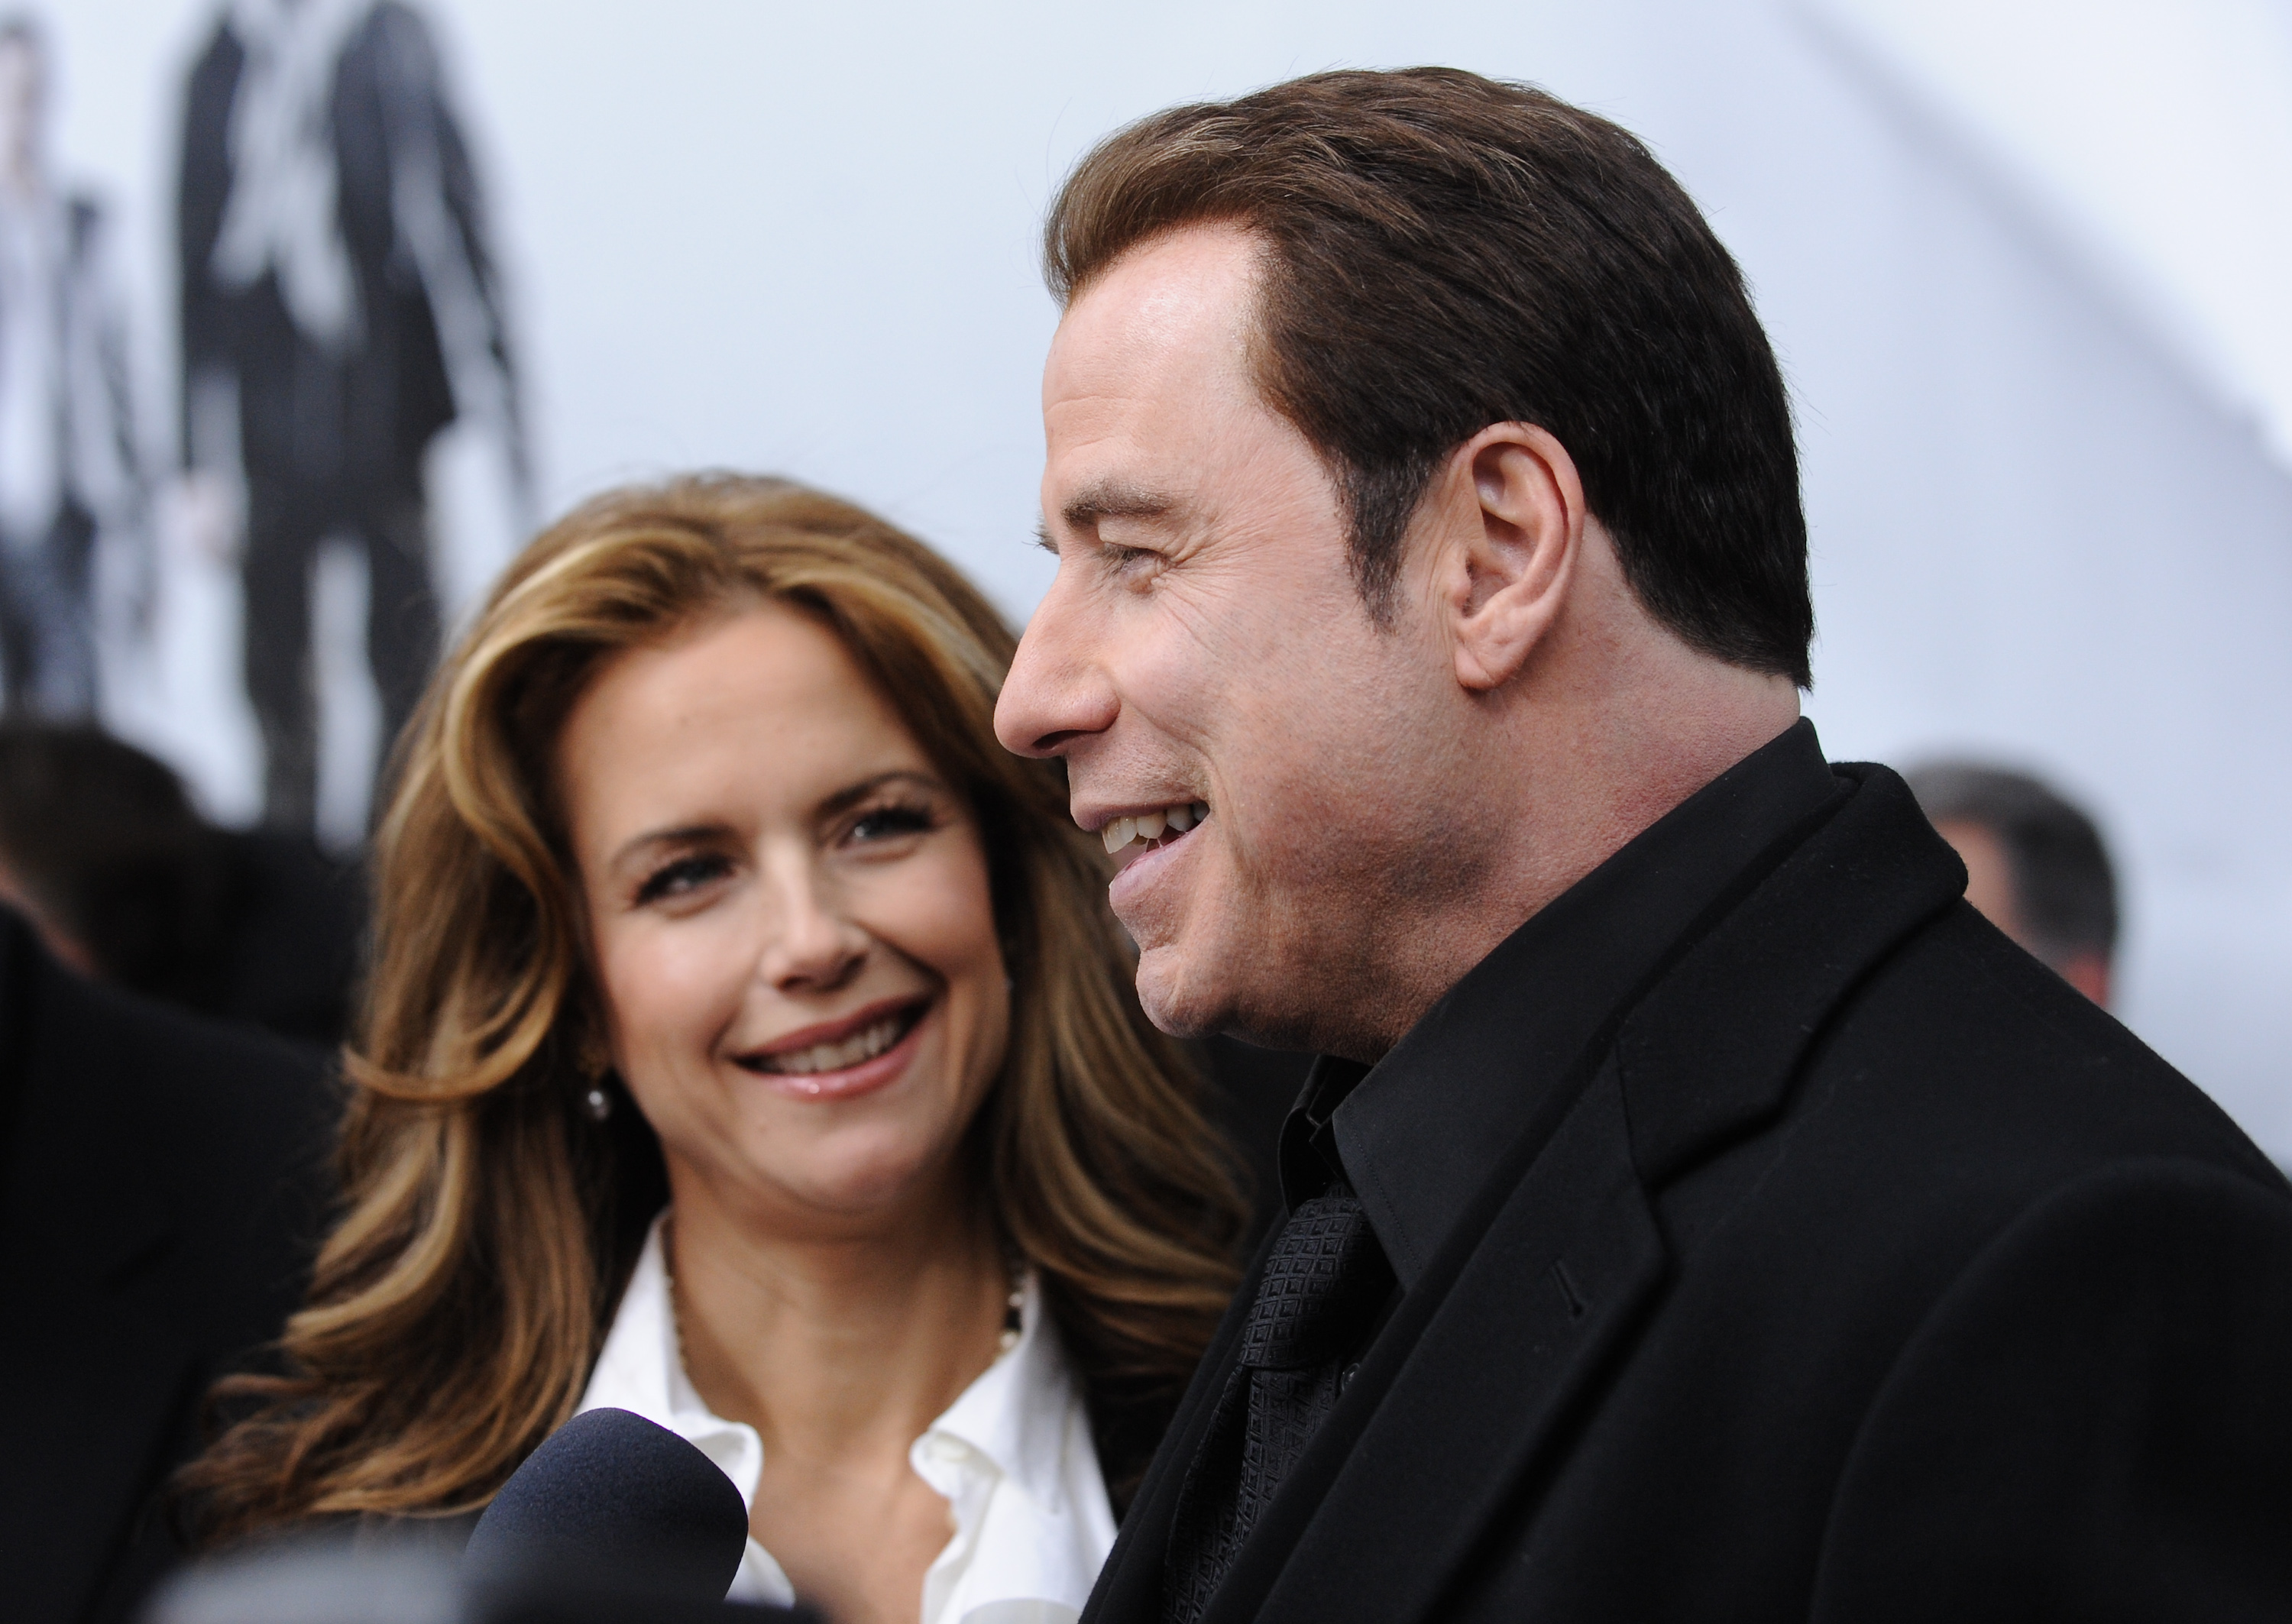 Actor John Travolta and wife actress Kelly Preston attend the premiere of 陟rom Paris With Love' at the Ziegfeld Theatre on Thursday.